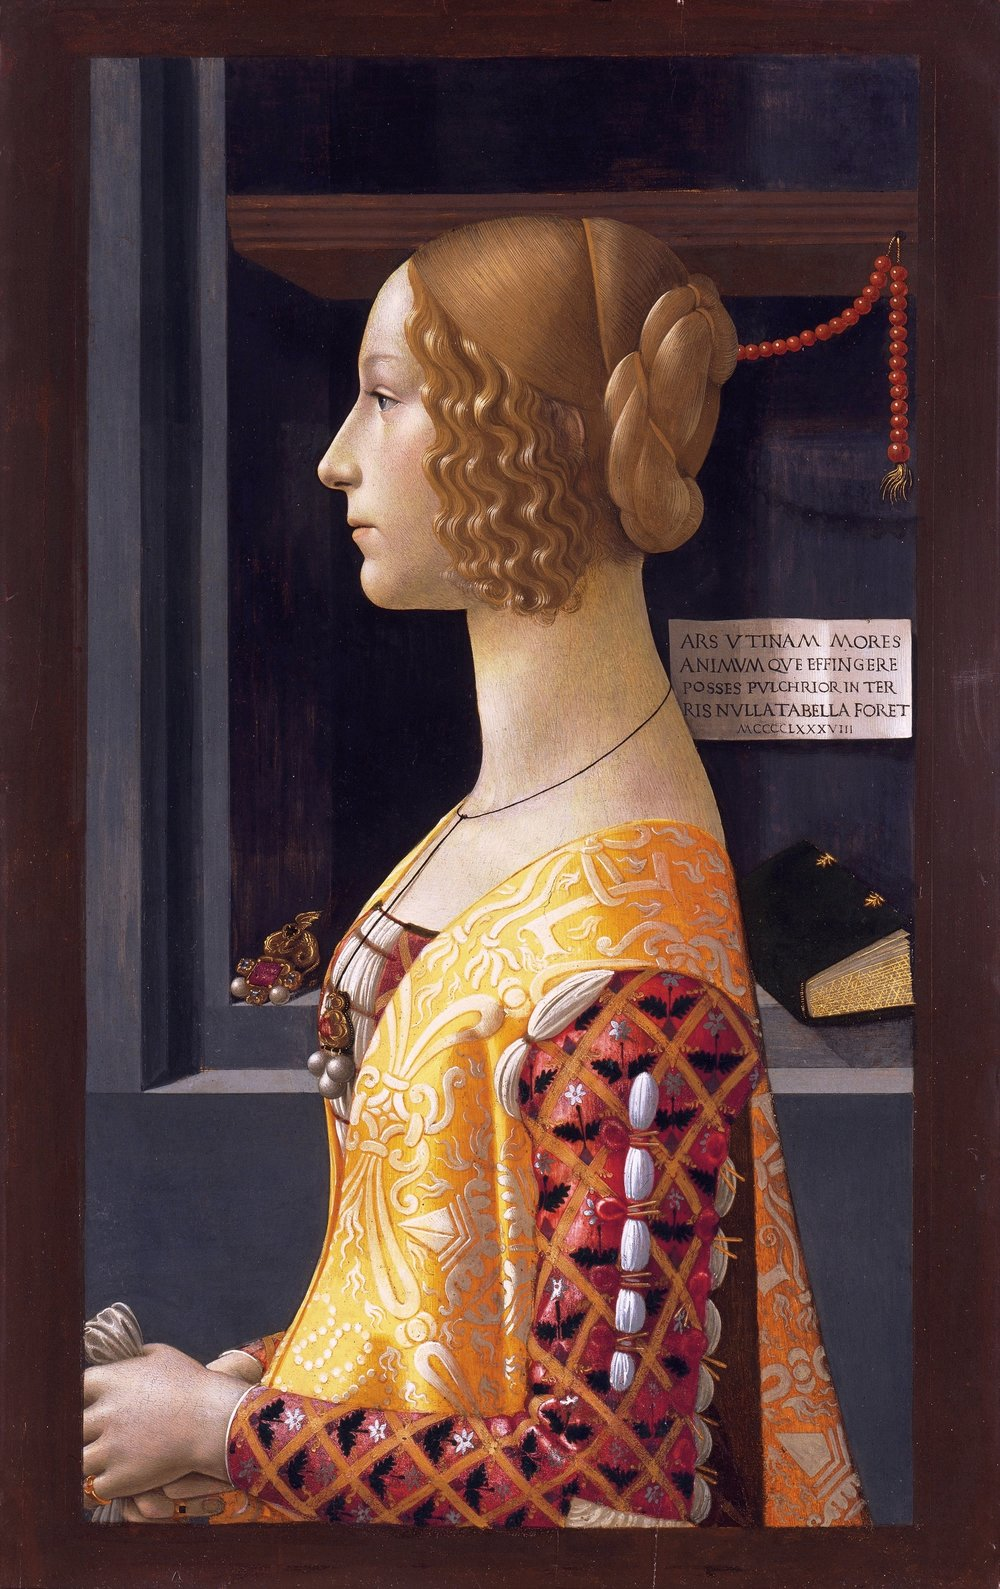 Domenico Ghirlandaio (garland-maker)